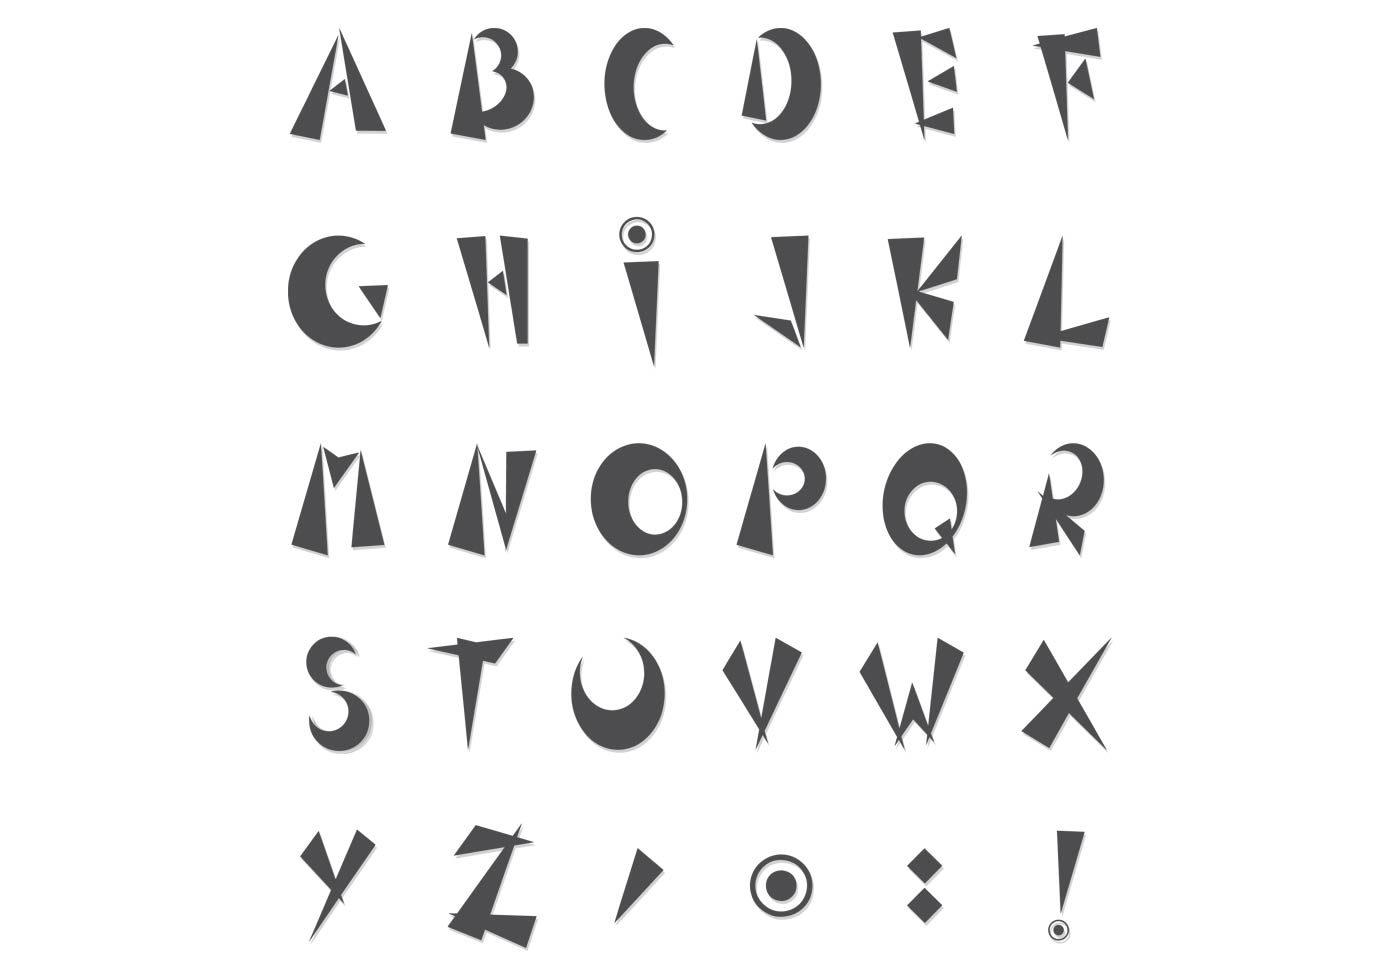 Download Funky Alphabet PSD Pack - Free Photoshop Brushes at Brusheezy!